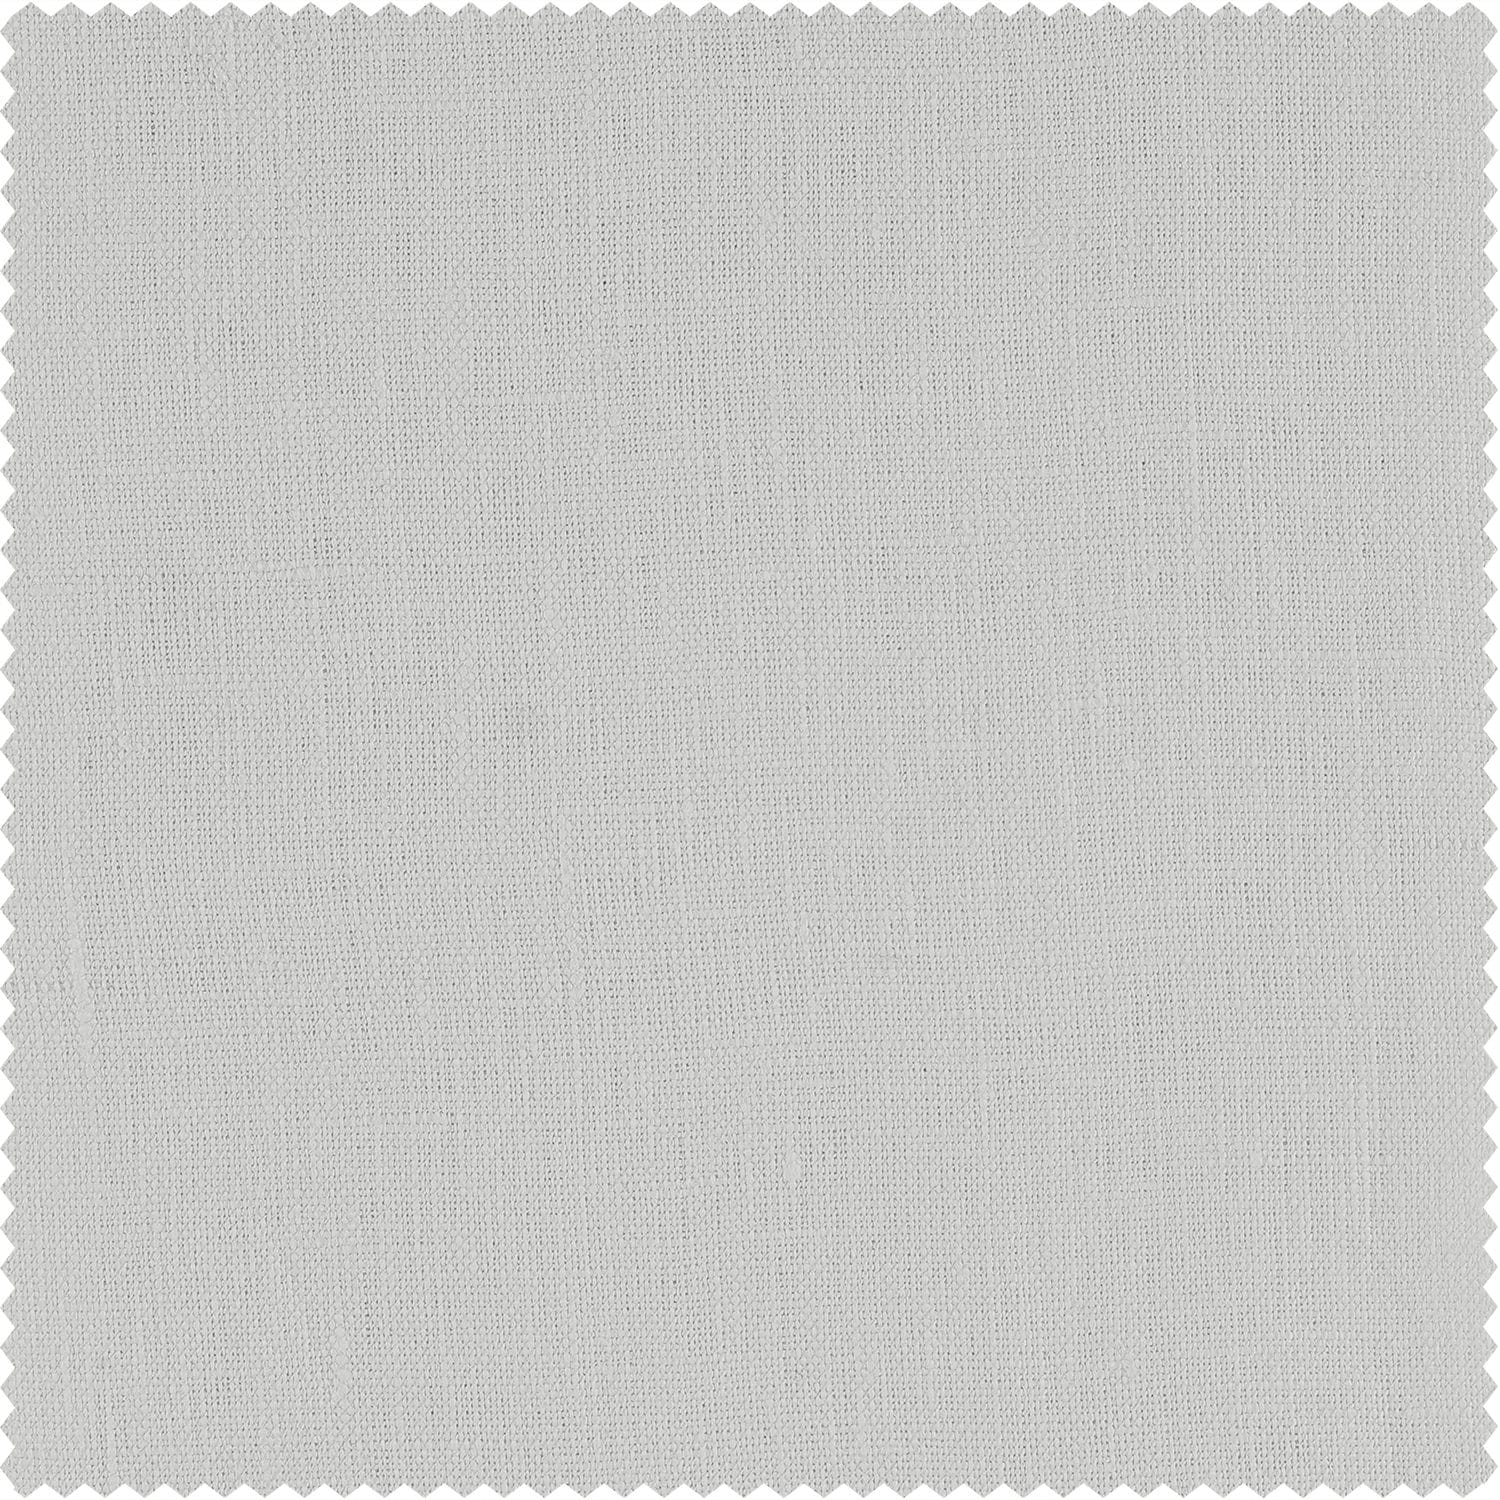 Crisp White French Linen Swatch